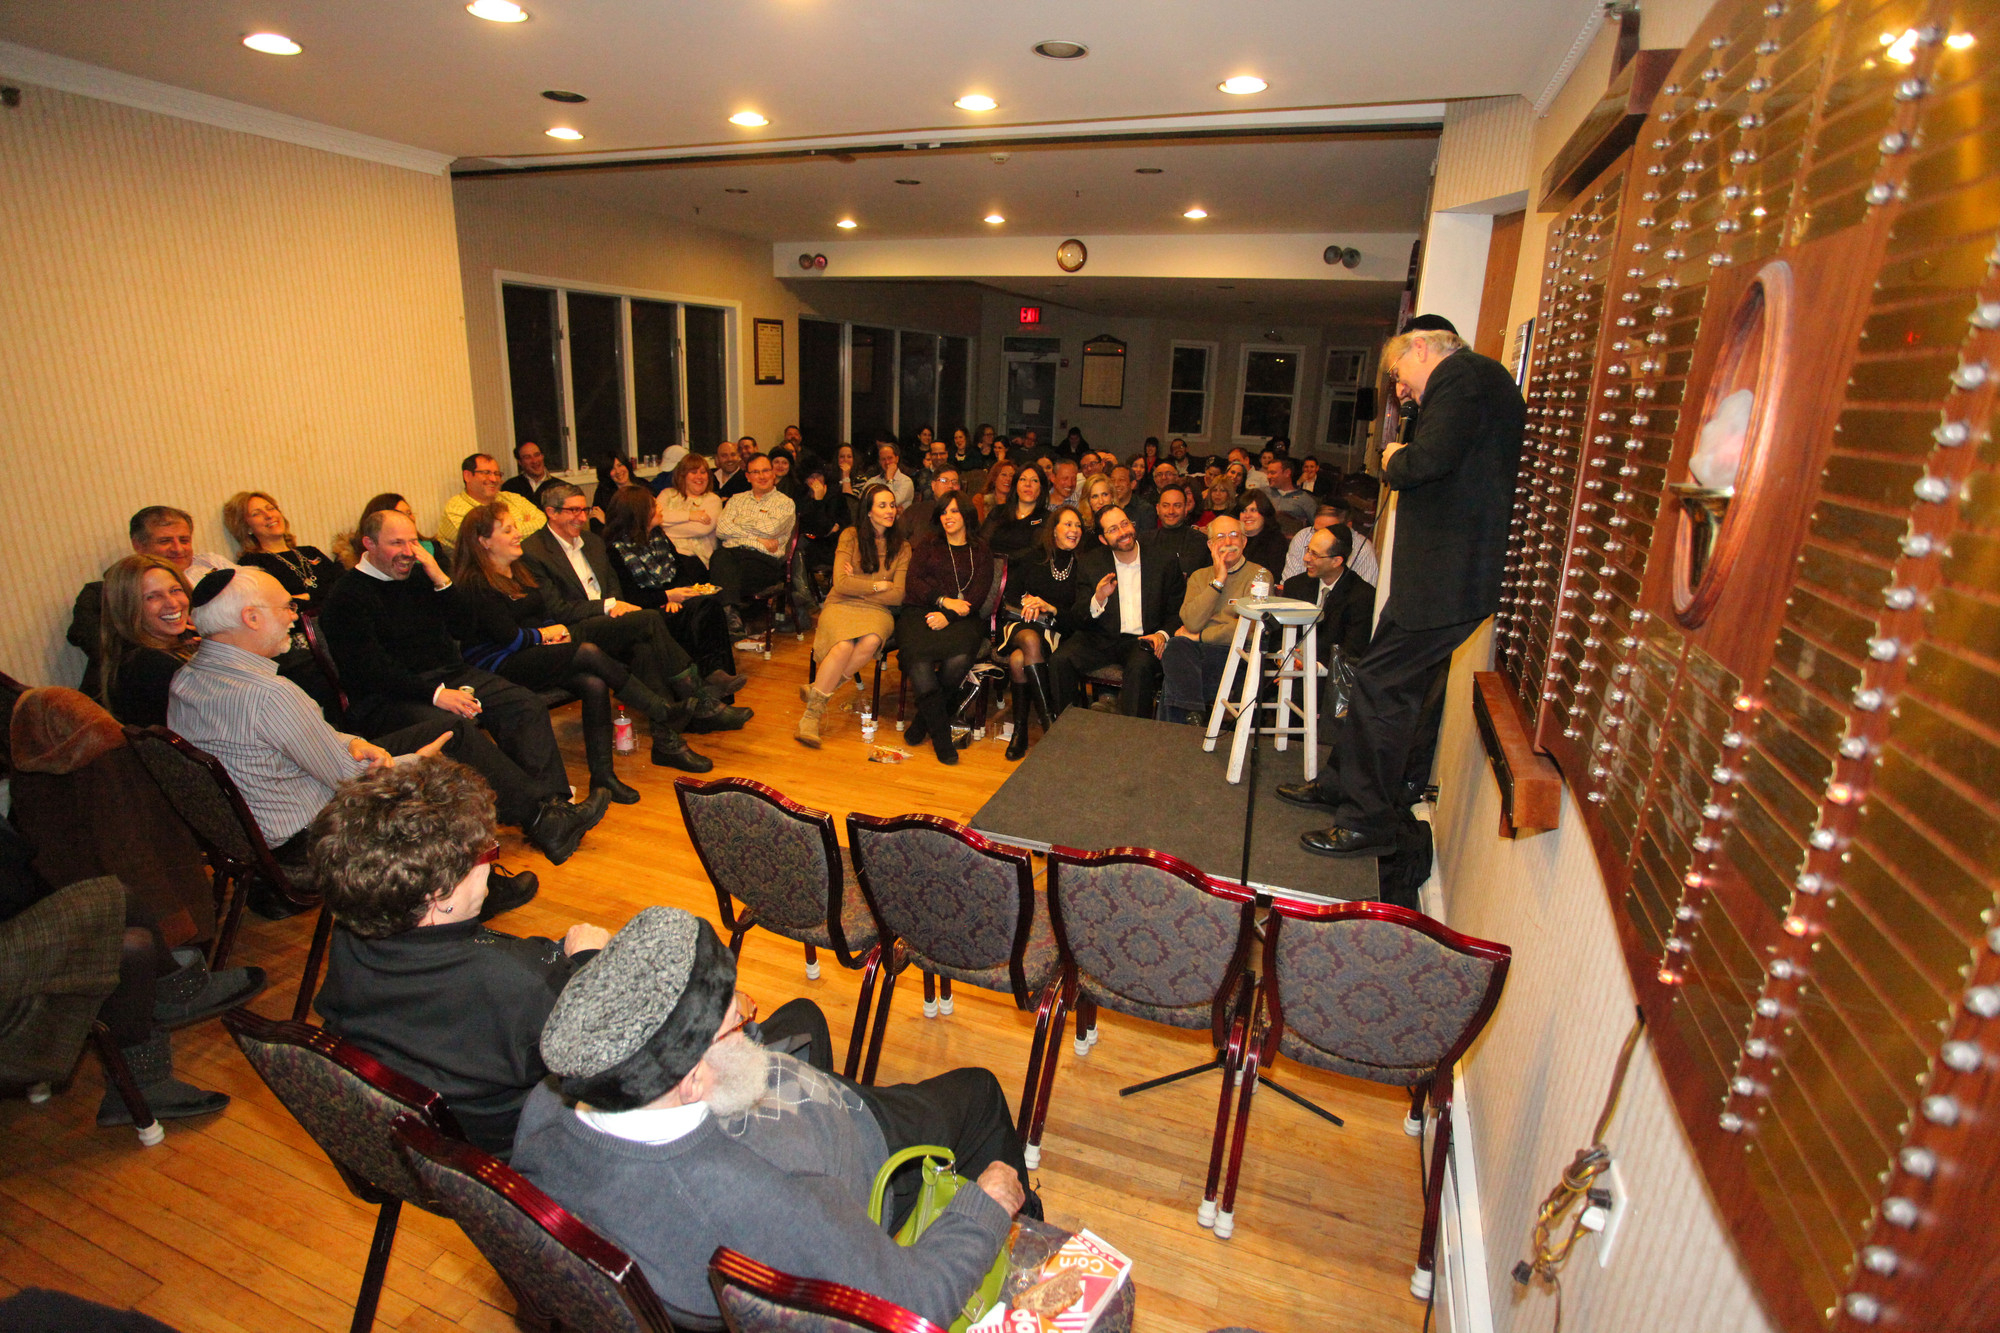 At Chabad of the Five Towns Comedy Night, comedian Randy Levin kept the audience in stitches throughout his routine.